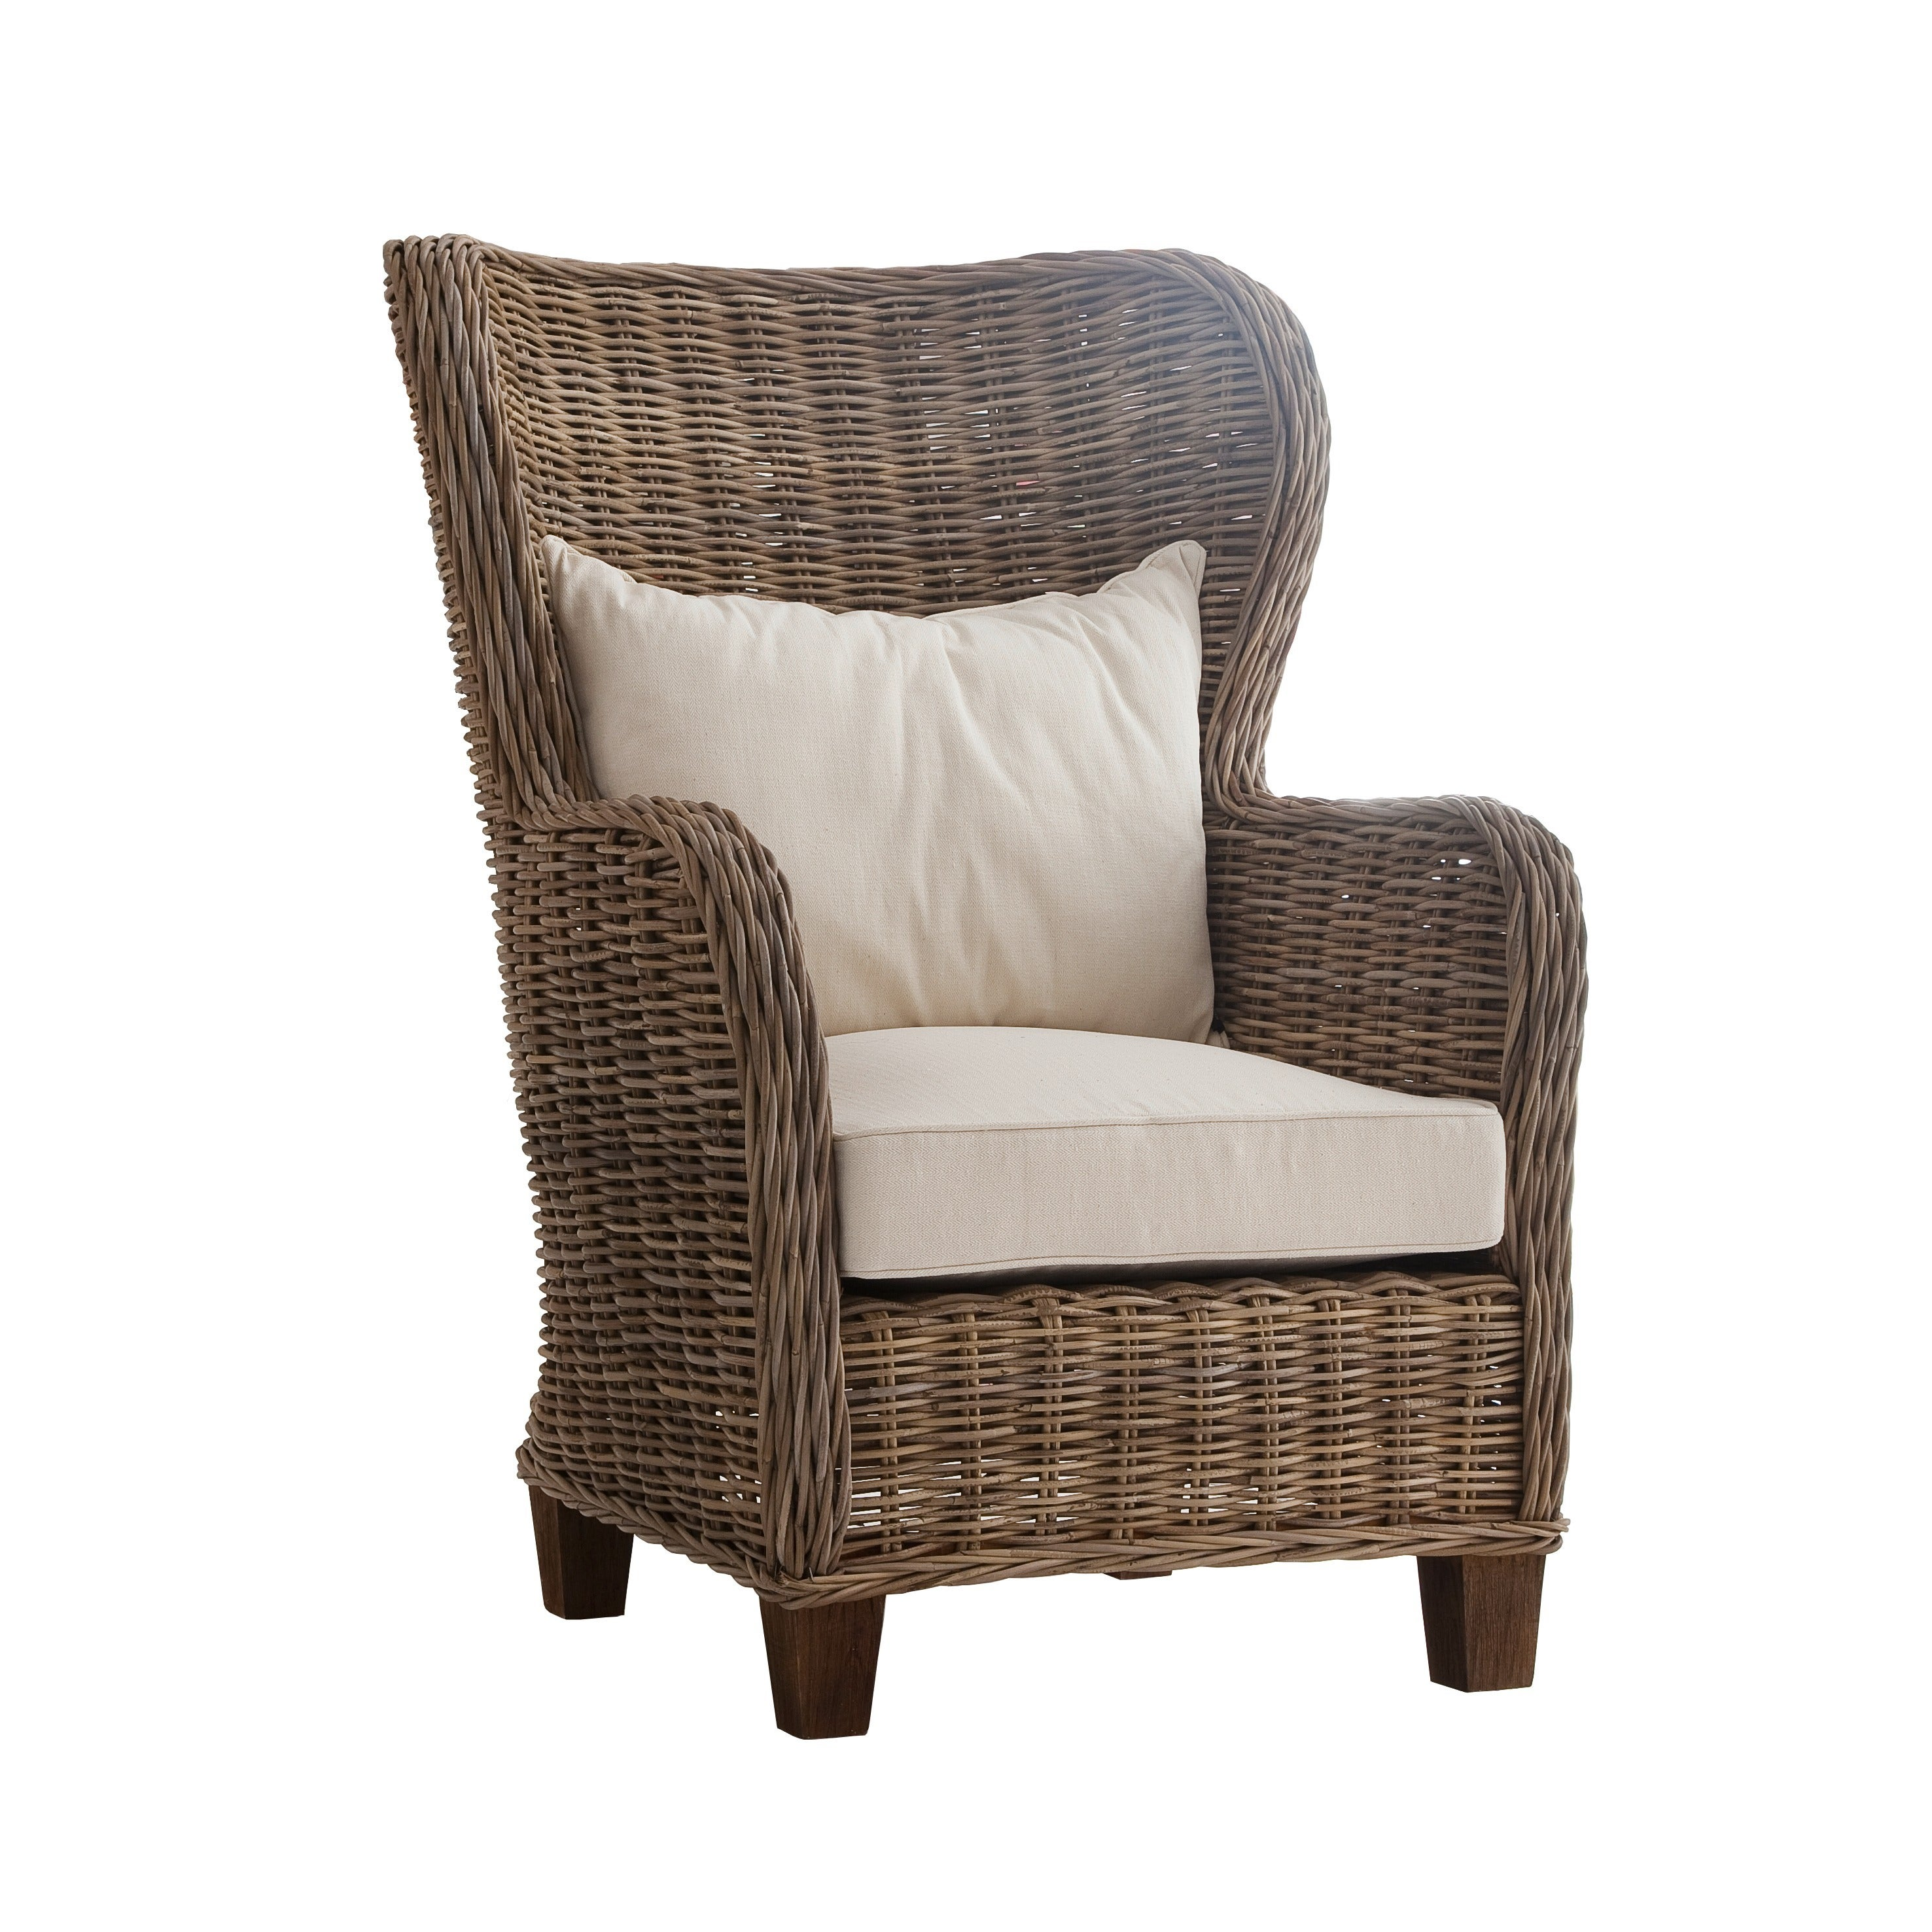 Havenside Home North Bend Wingback Woven Cushioned Chair   Free Shipping  Today   Overstock   17085215